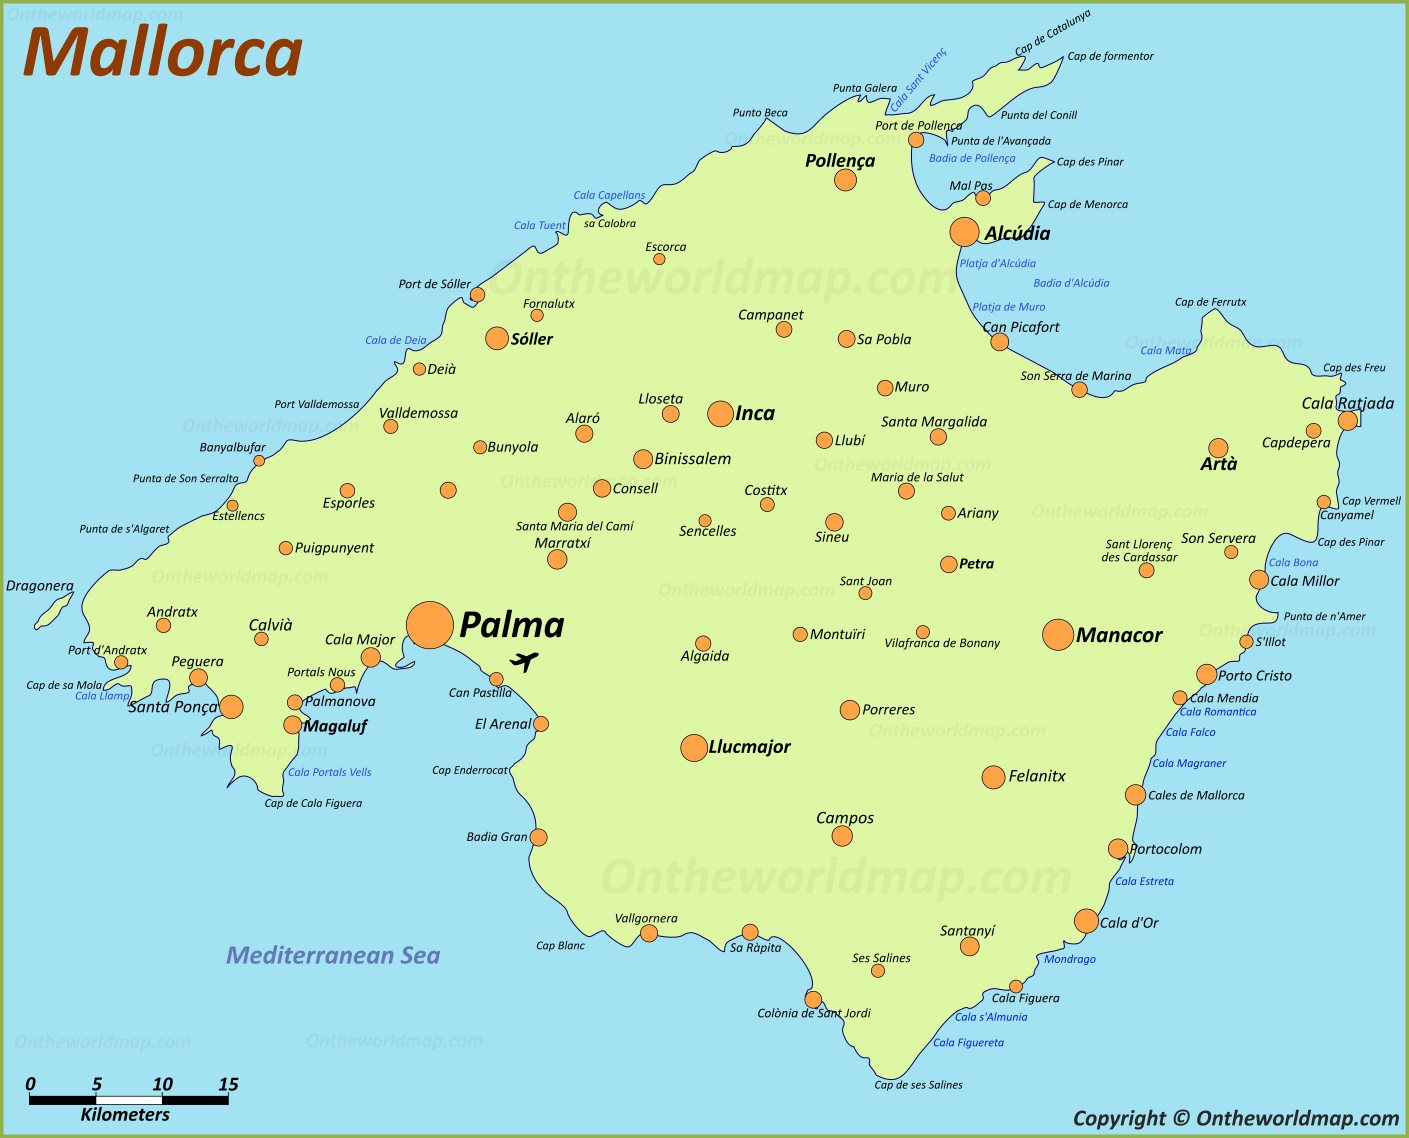 Majorca Spain Map Majorca Maps | Balearic Islands, Spain | Map of Majorca (Mallorca)